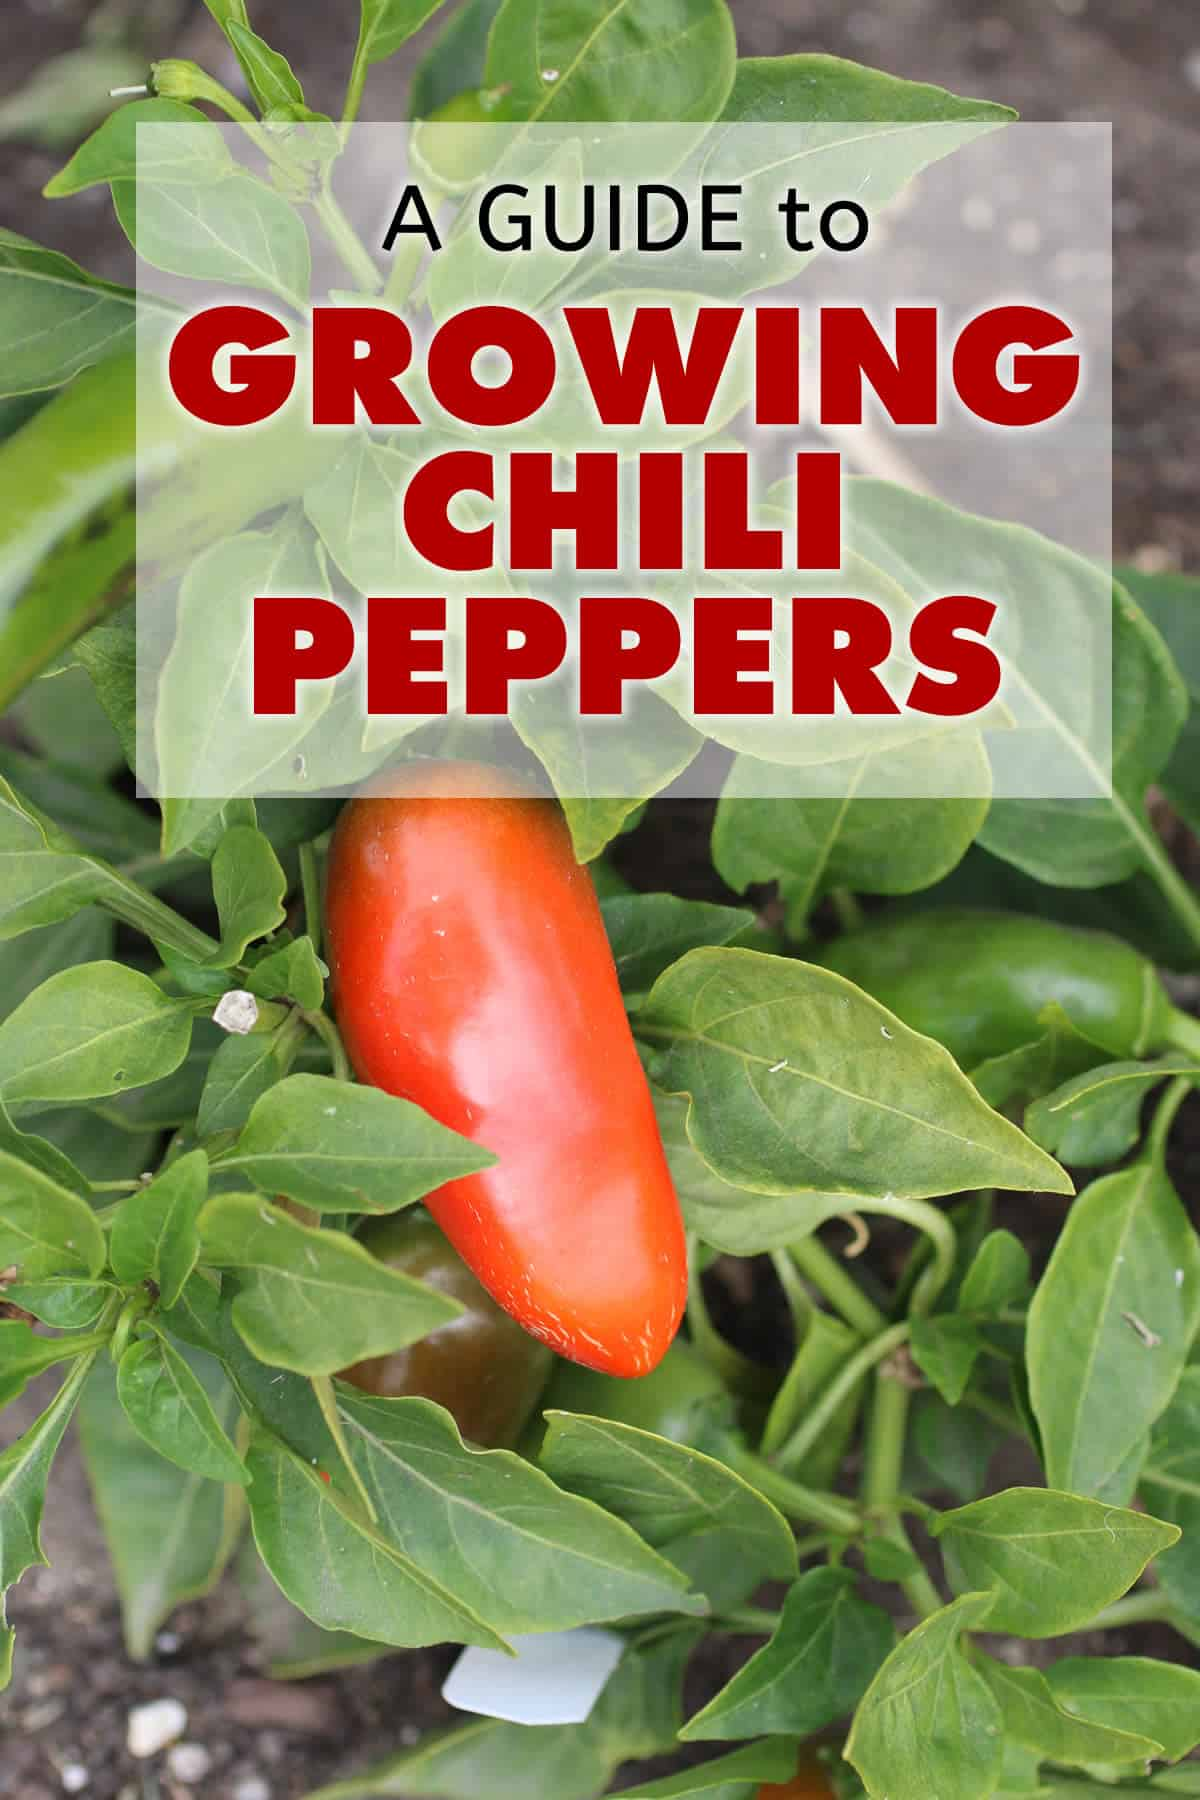 A Guide to Growing Chili Peppers